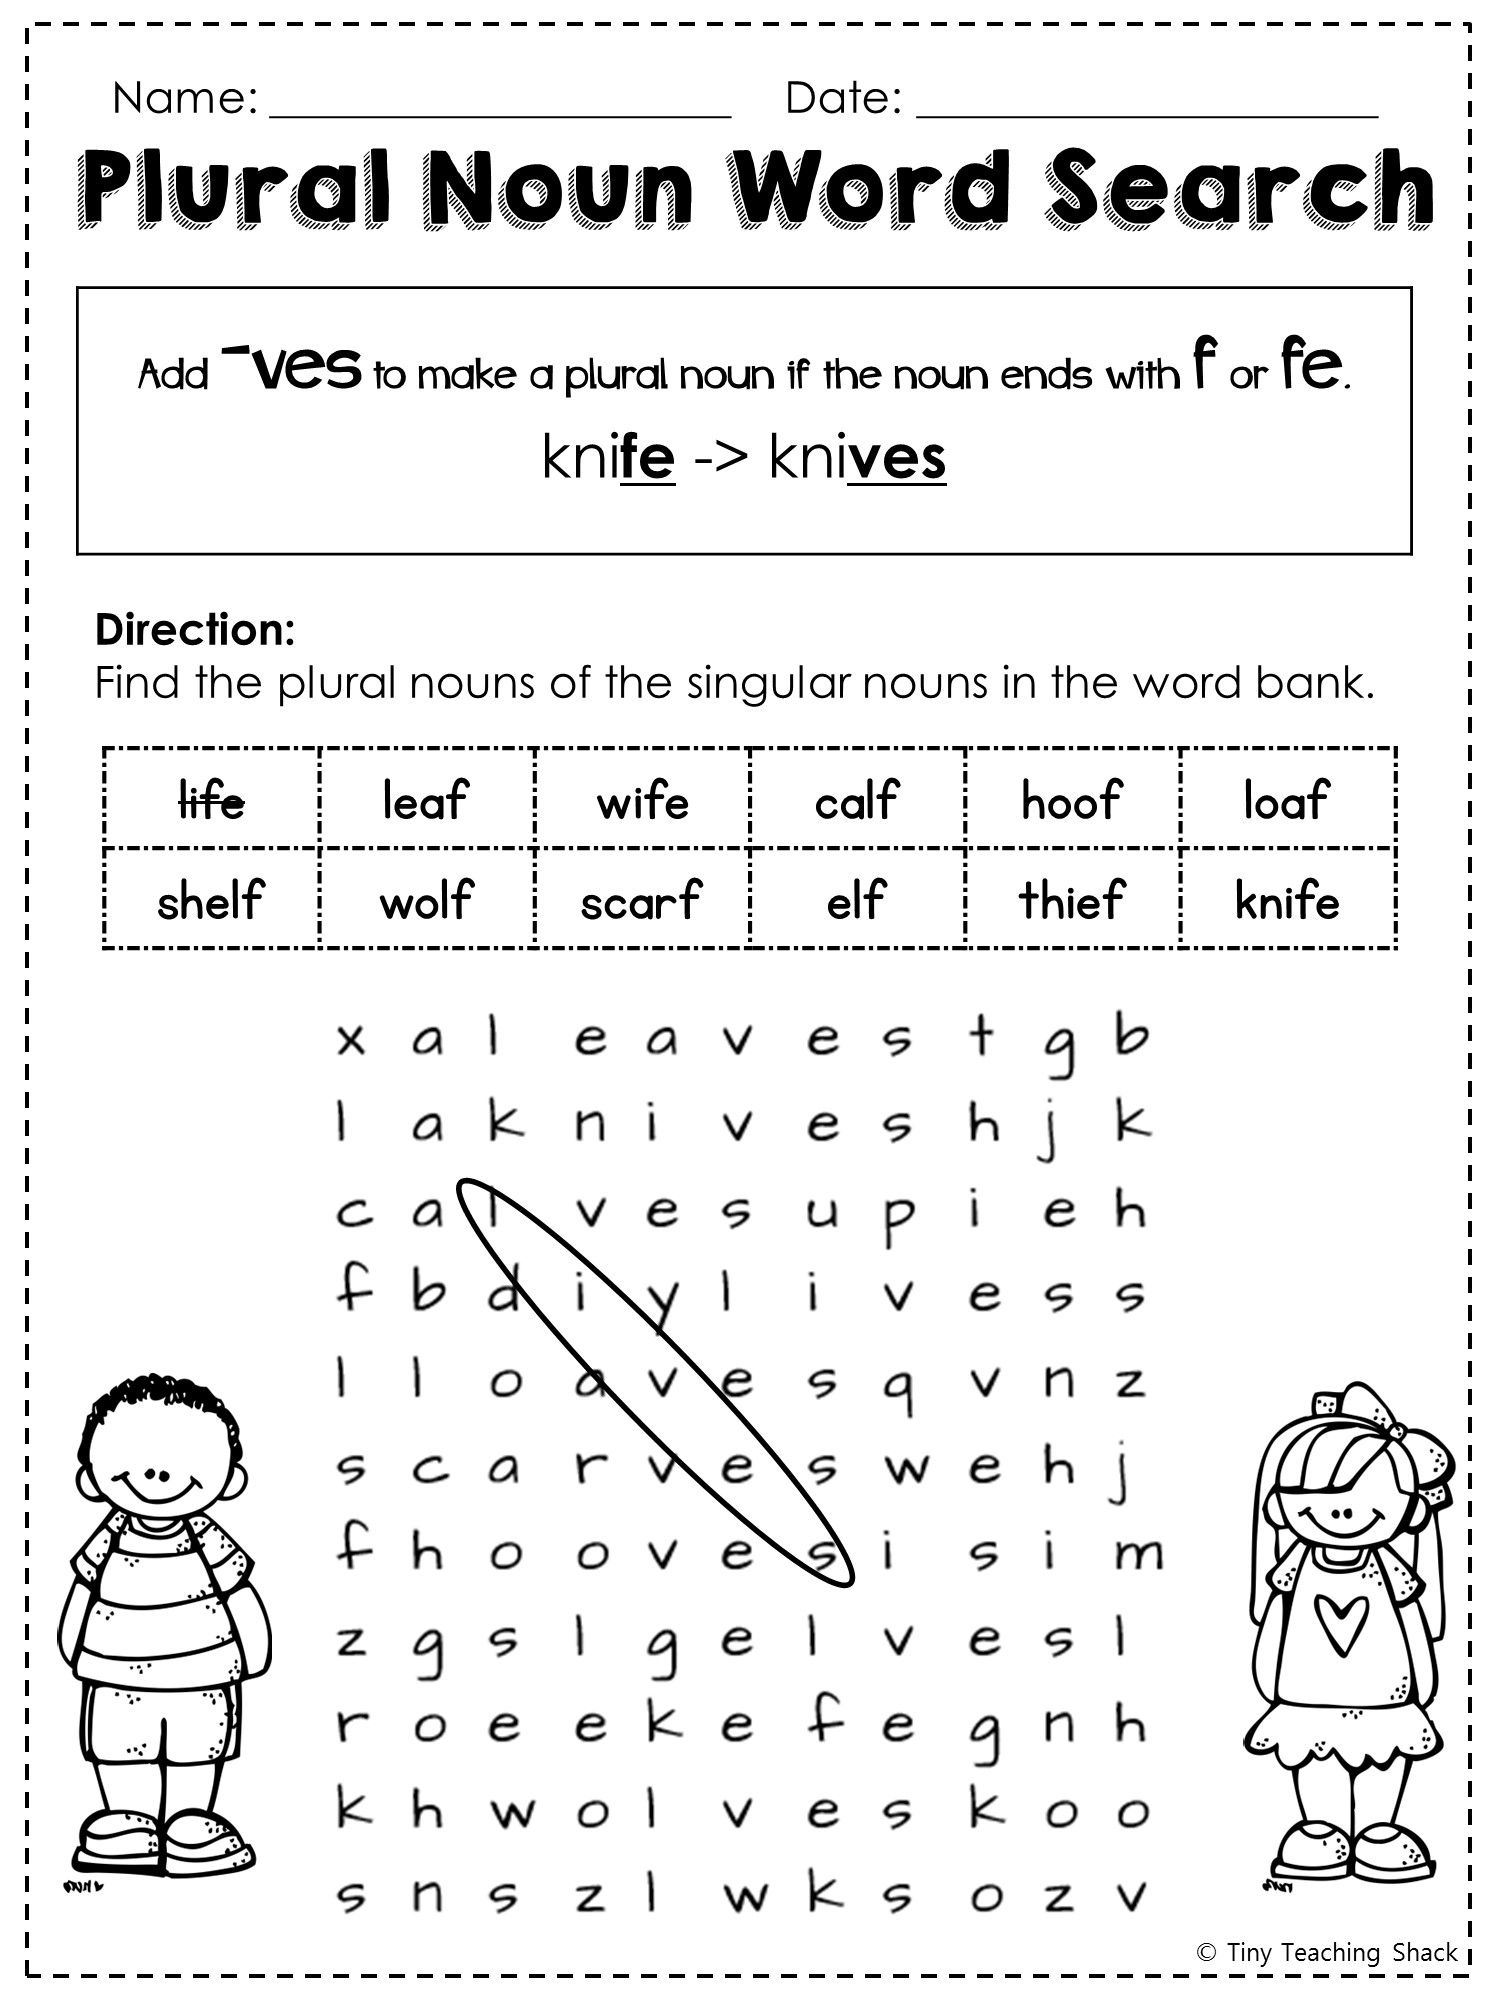 Free Irregular Plural Noun Word Search Nouns Worksheet Nouns And Verbs Plurals Worksheets